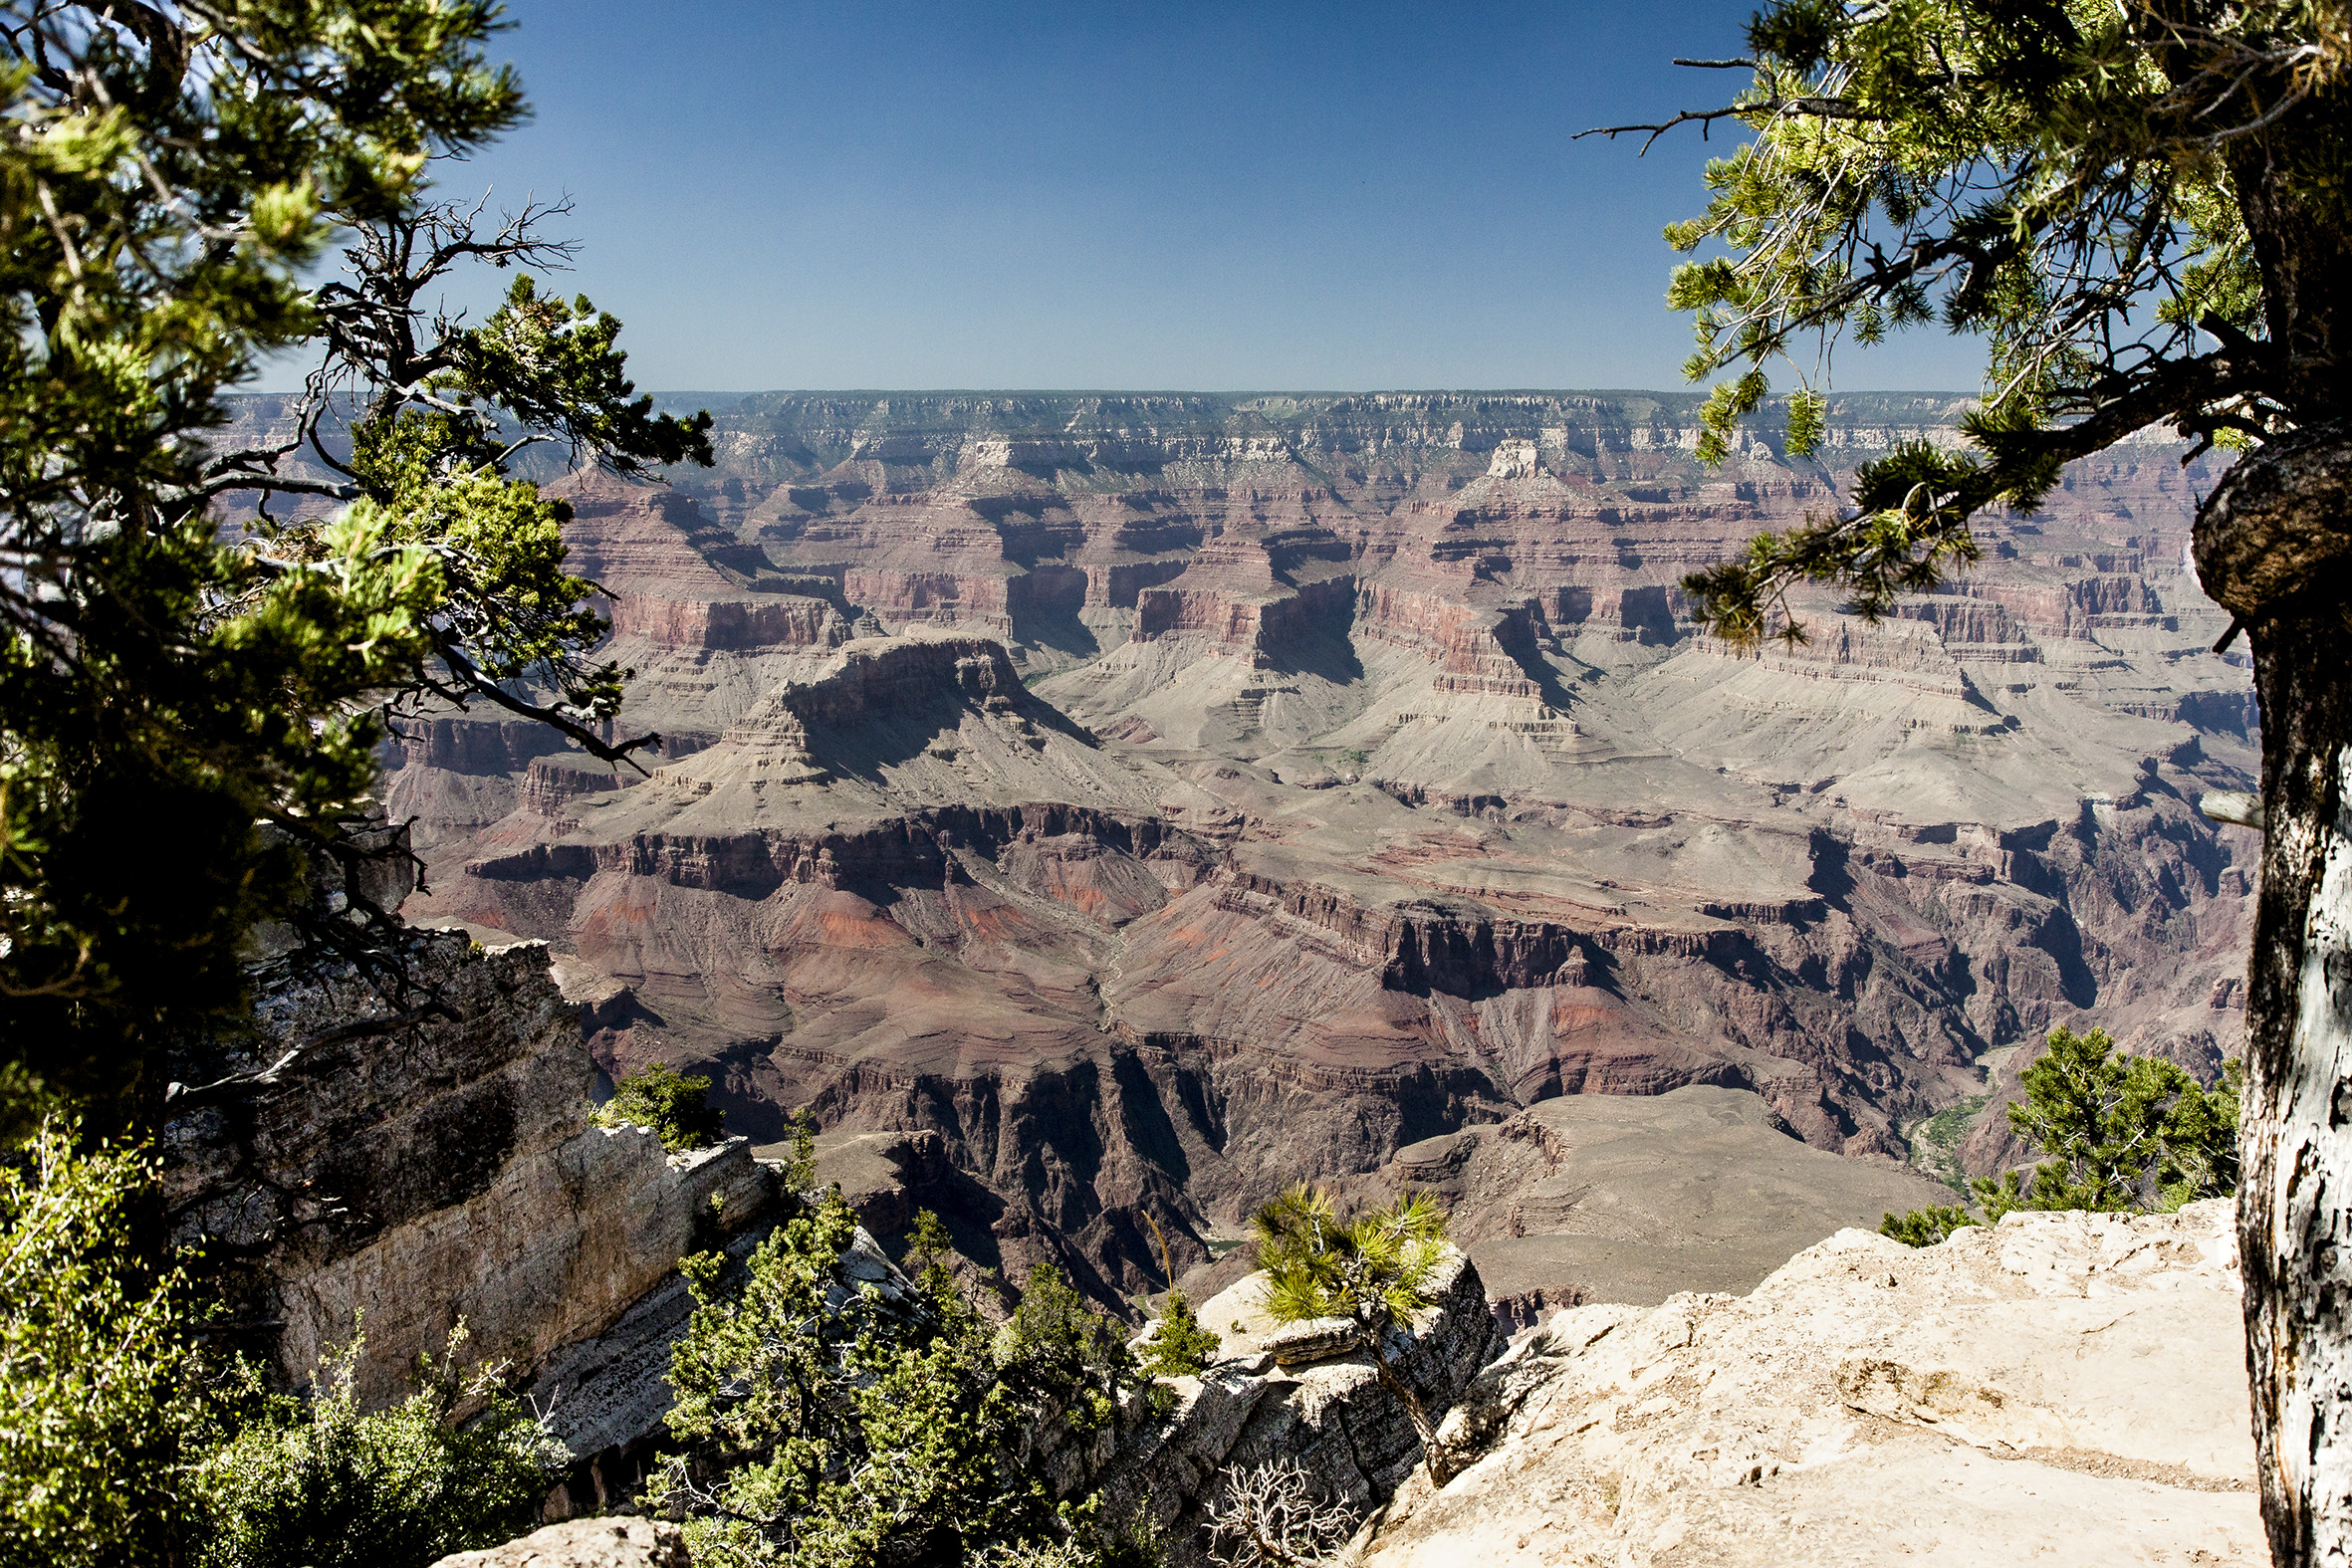 voyages-grand-canyon-usa-ouest-2012-marie-colette-becker-09